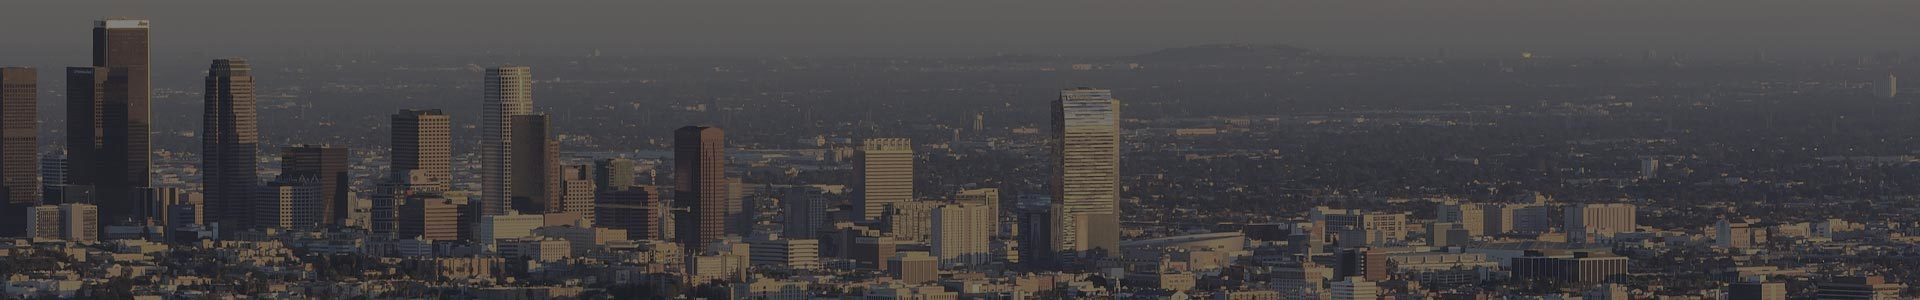 Stanton Chase Los Angeles Announces New Ownership Cover Image